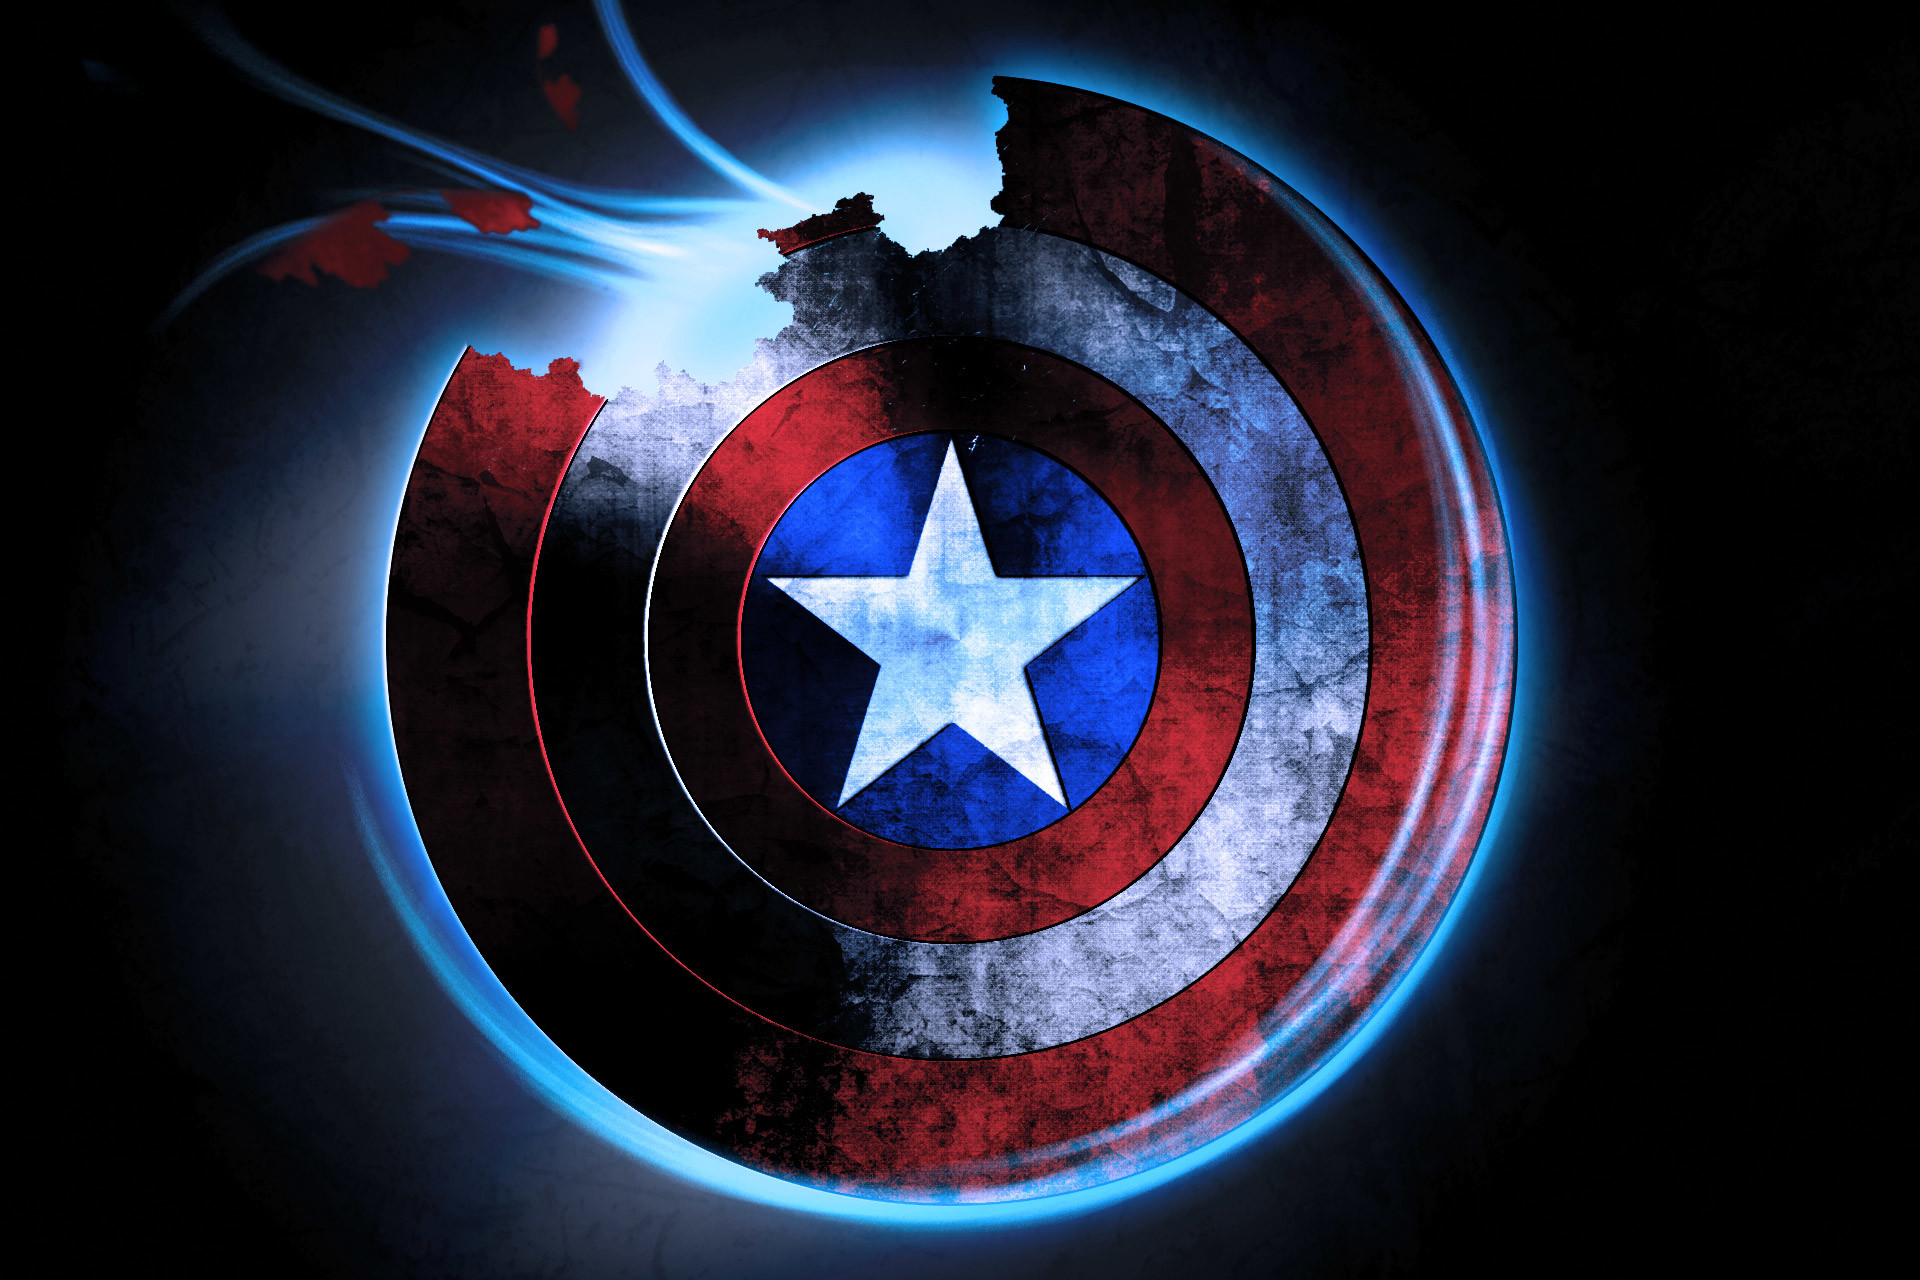 Captain America Full Hd Wallpaper: Captain America Shield Wallpapers (69+ Images